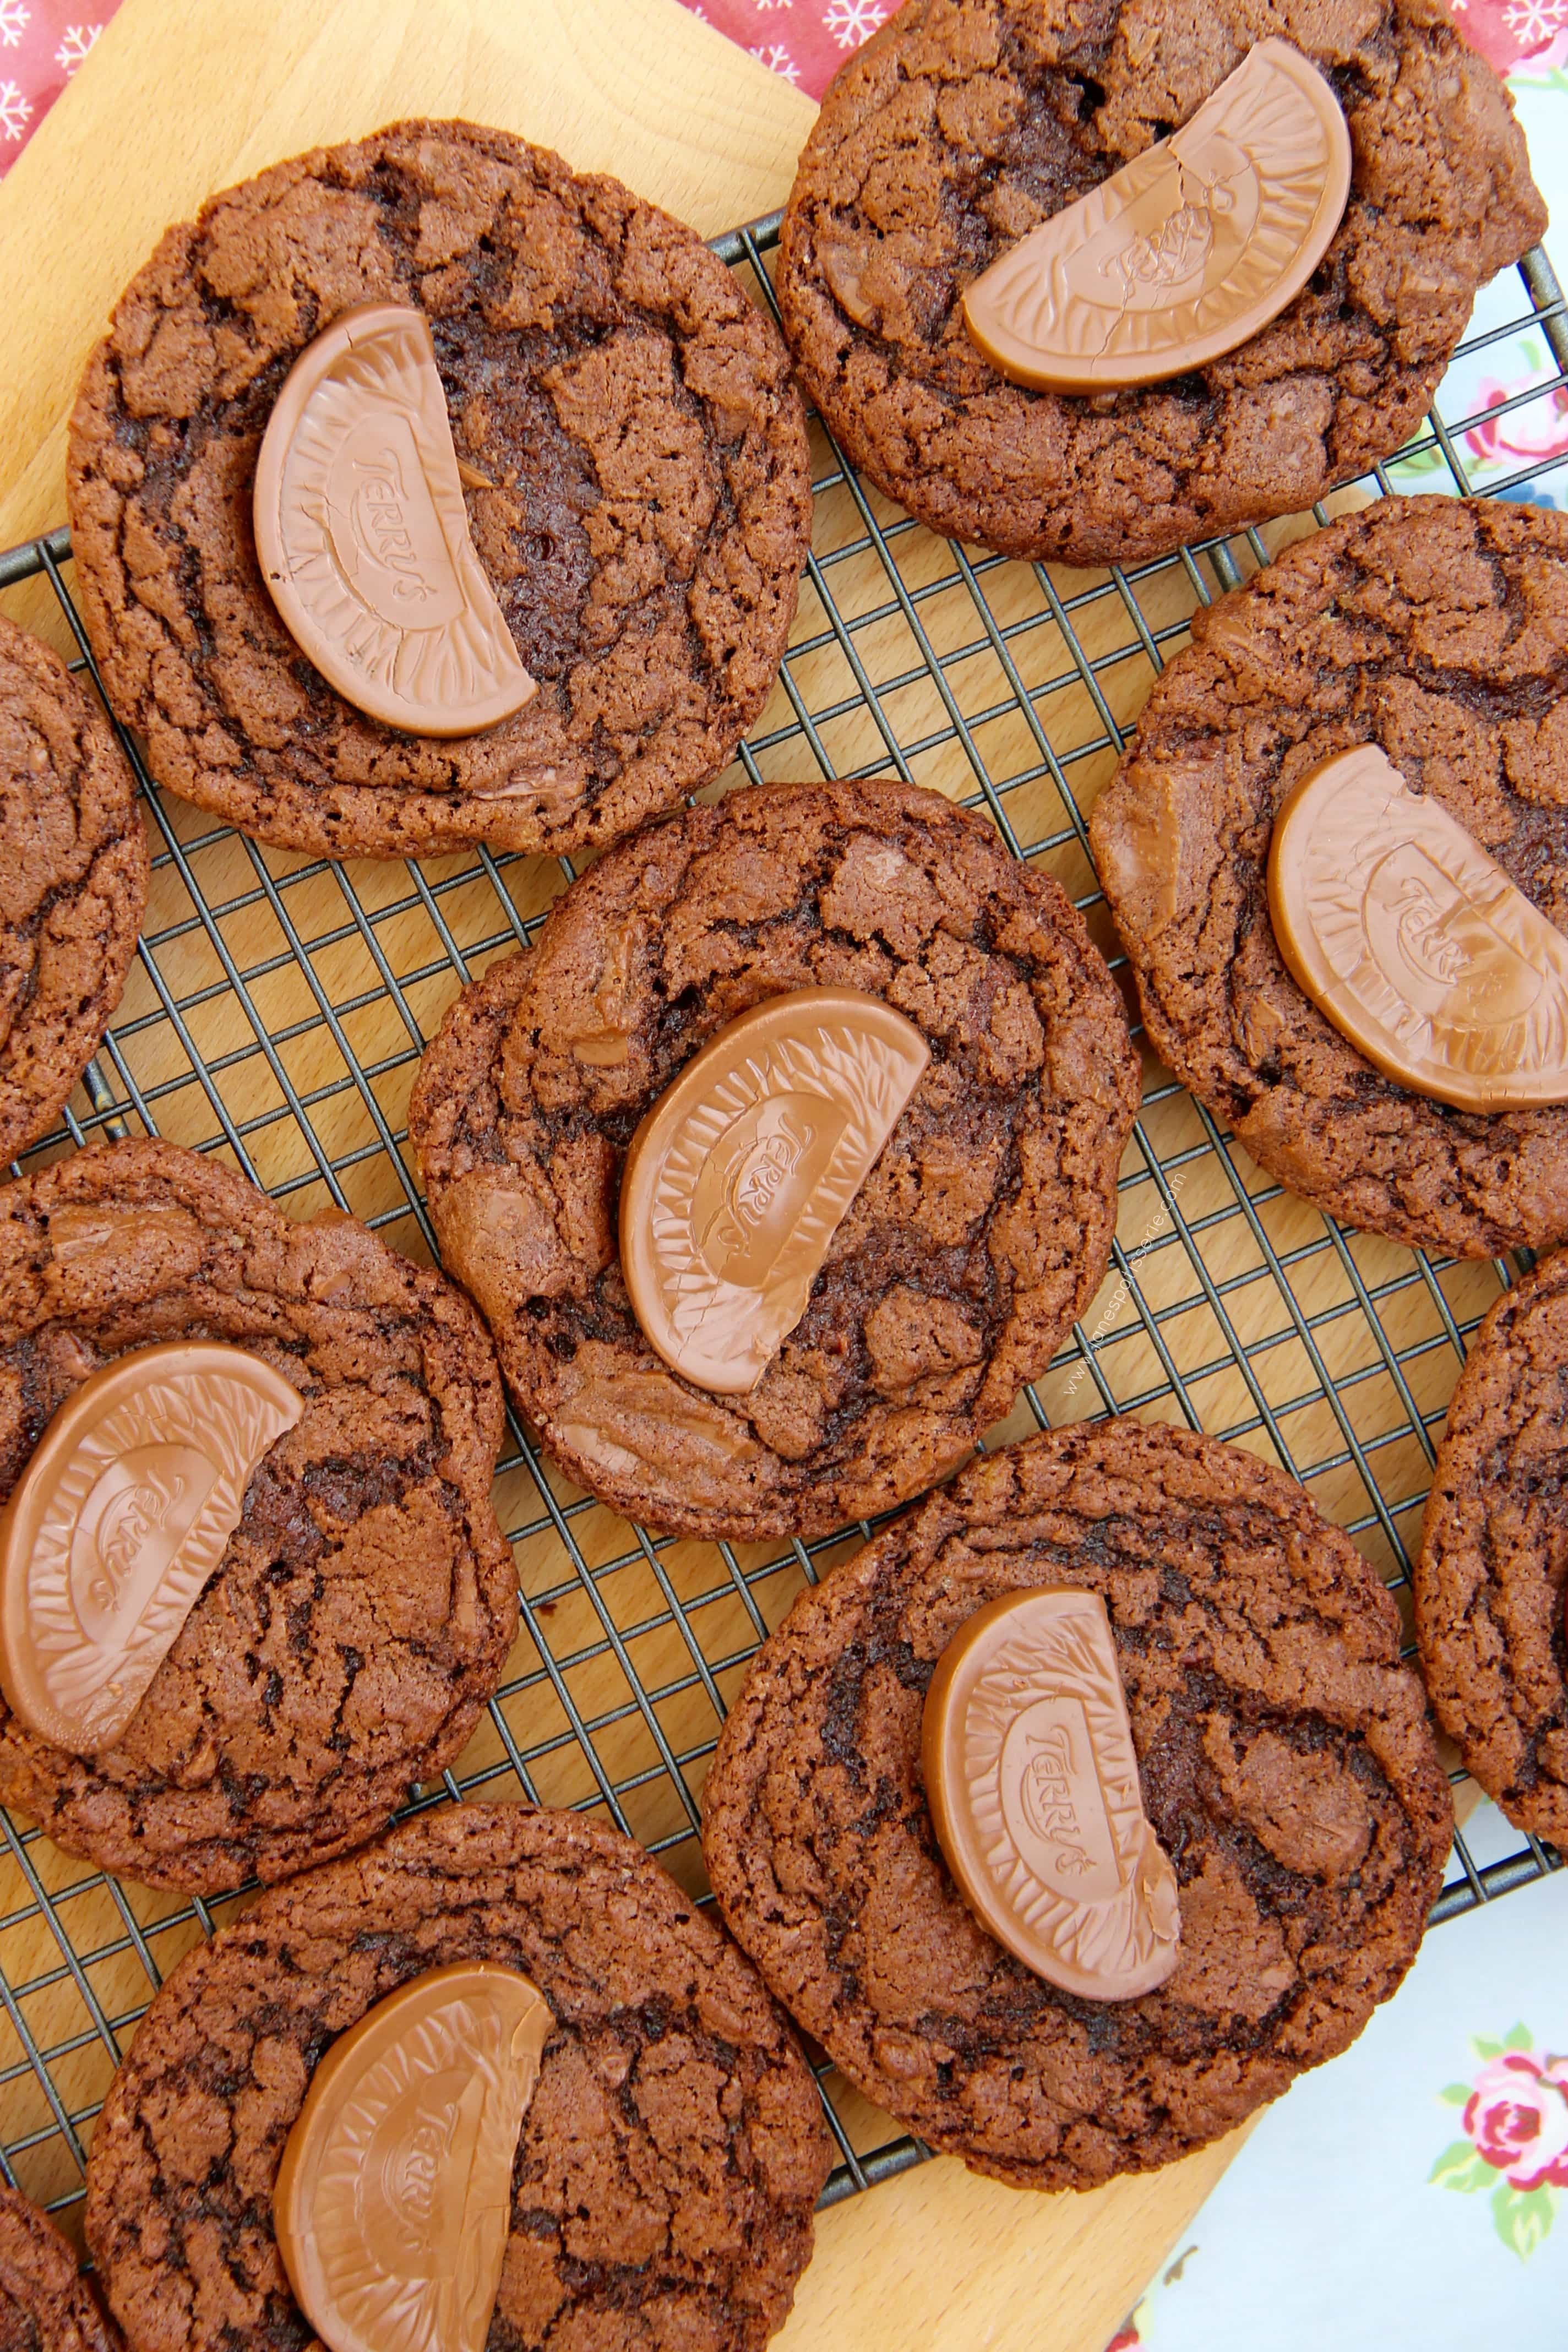 Terry's Chocolate Orange Cookies! - Jane's Patisserie